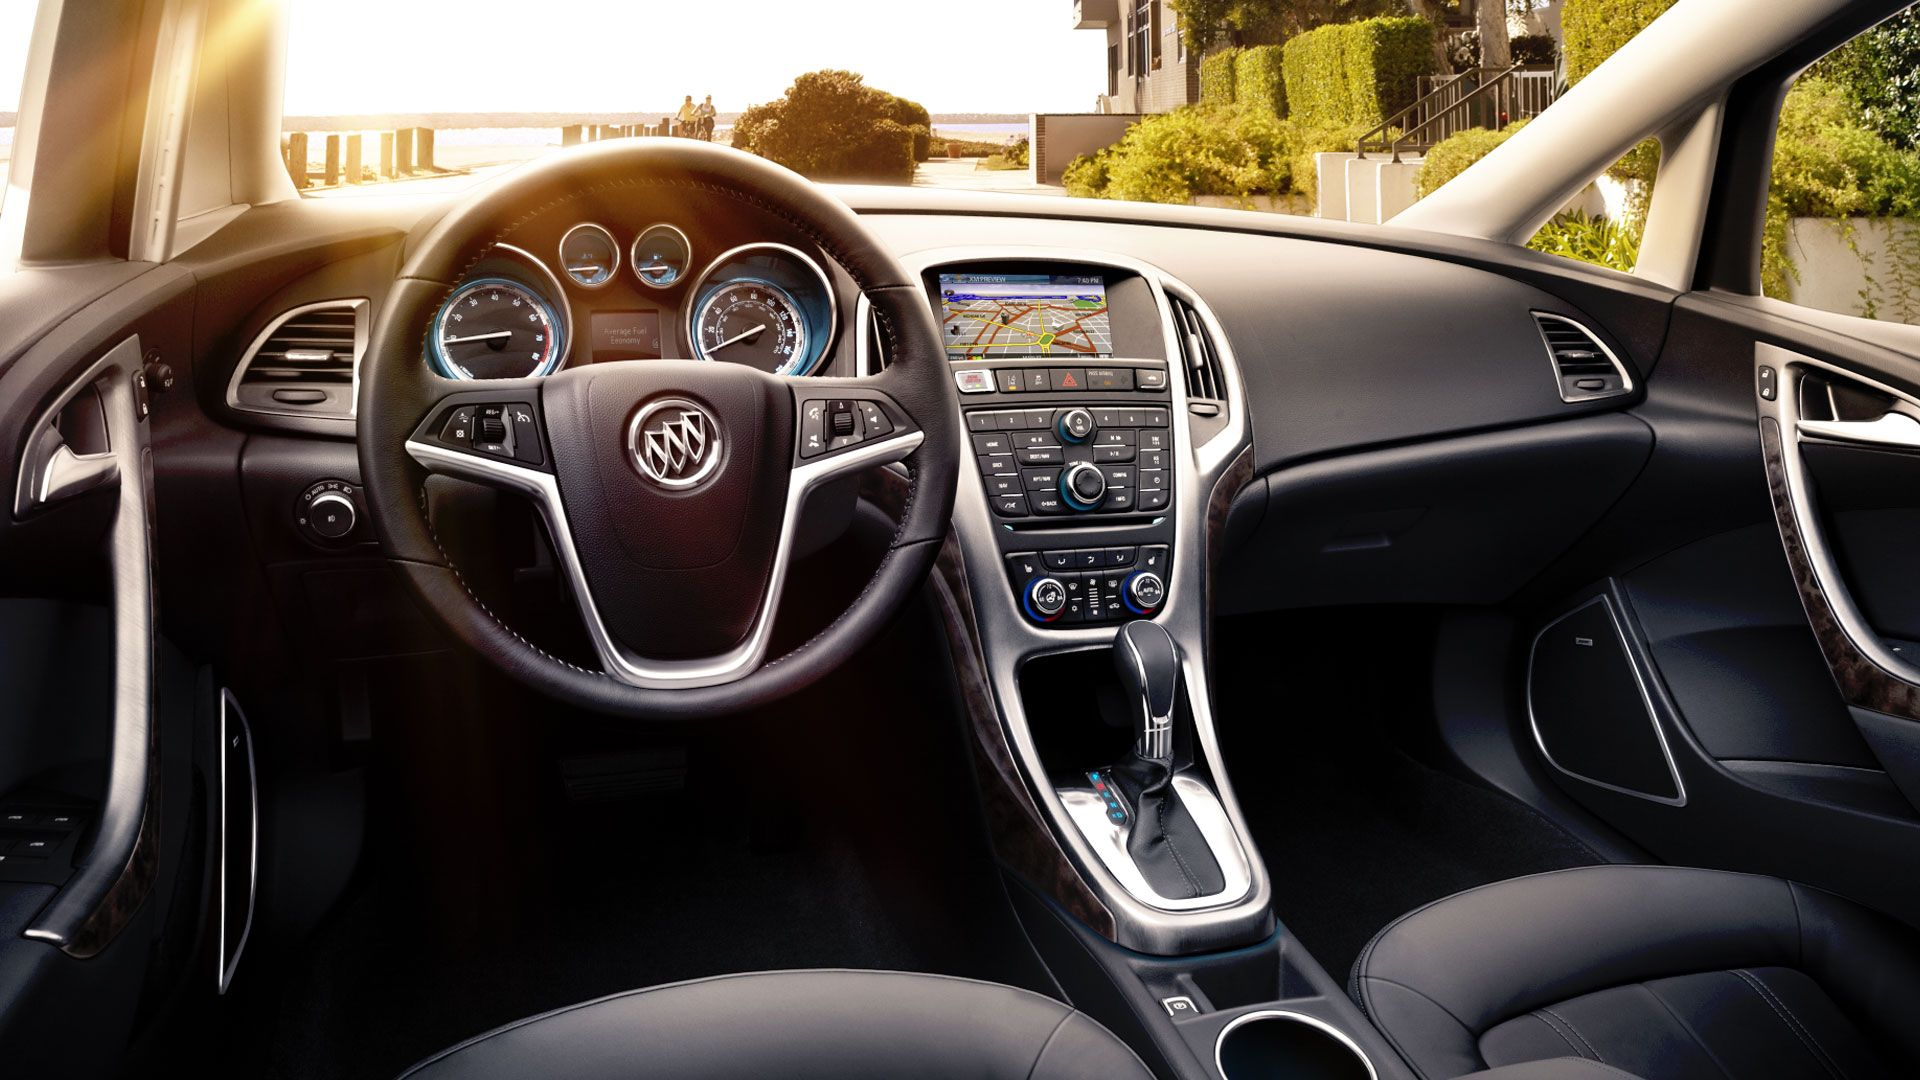 2014 Buick Verano Premium Not My Father S Buick Surprisingly Sporty Yet Very Refined My Next Car Buick Models Buick 2015 Buick